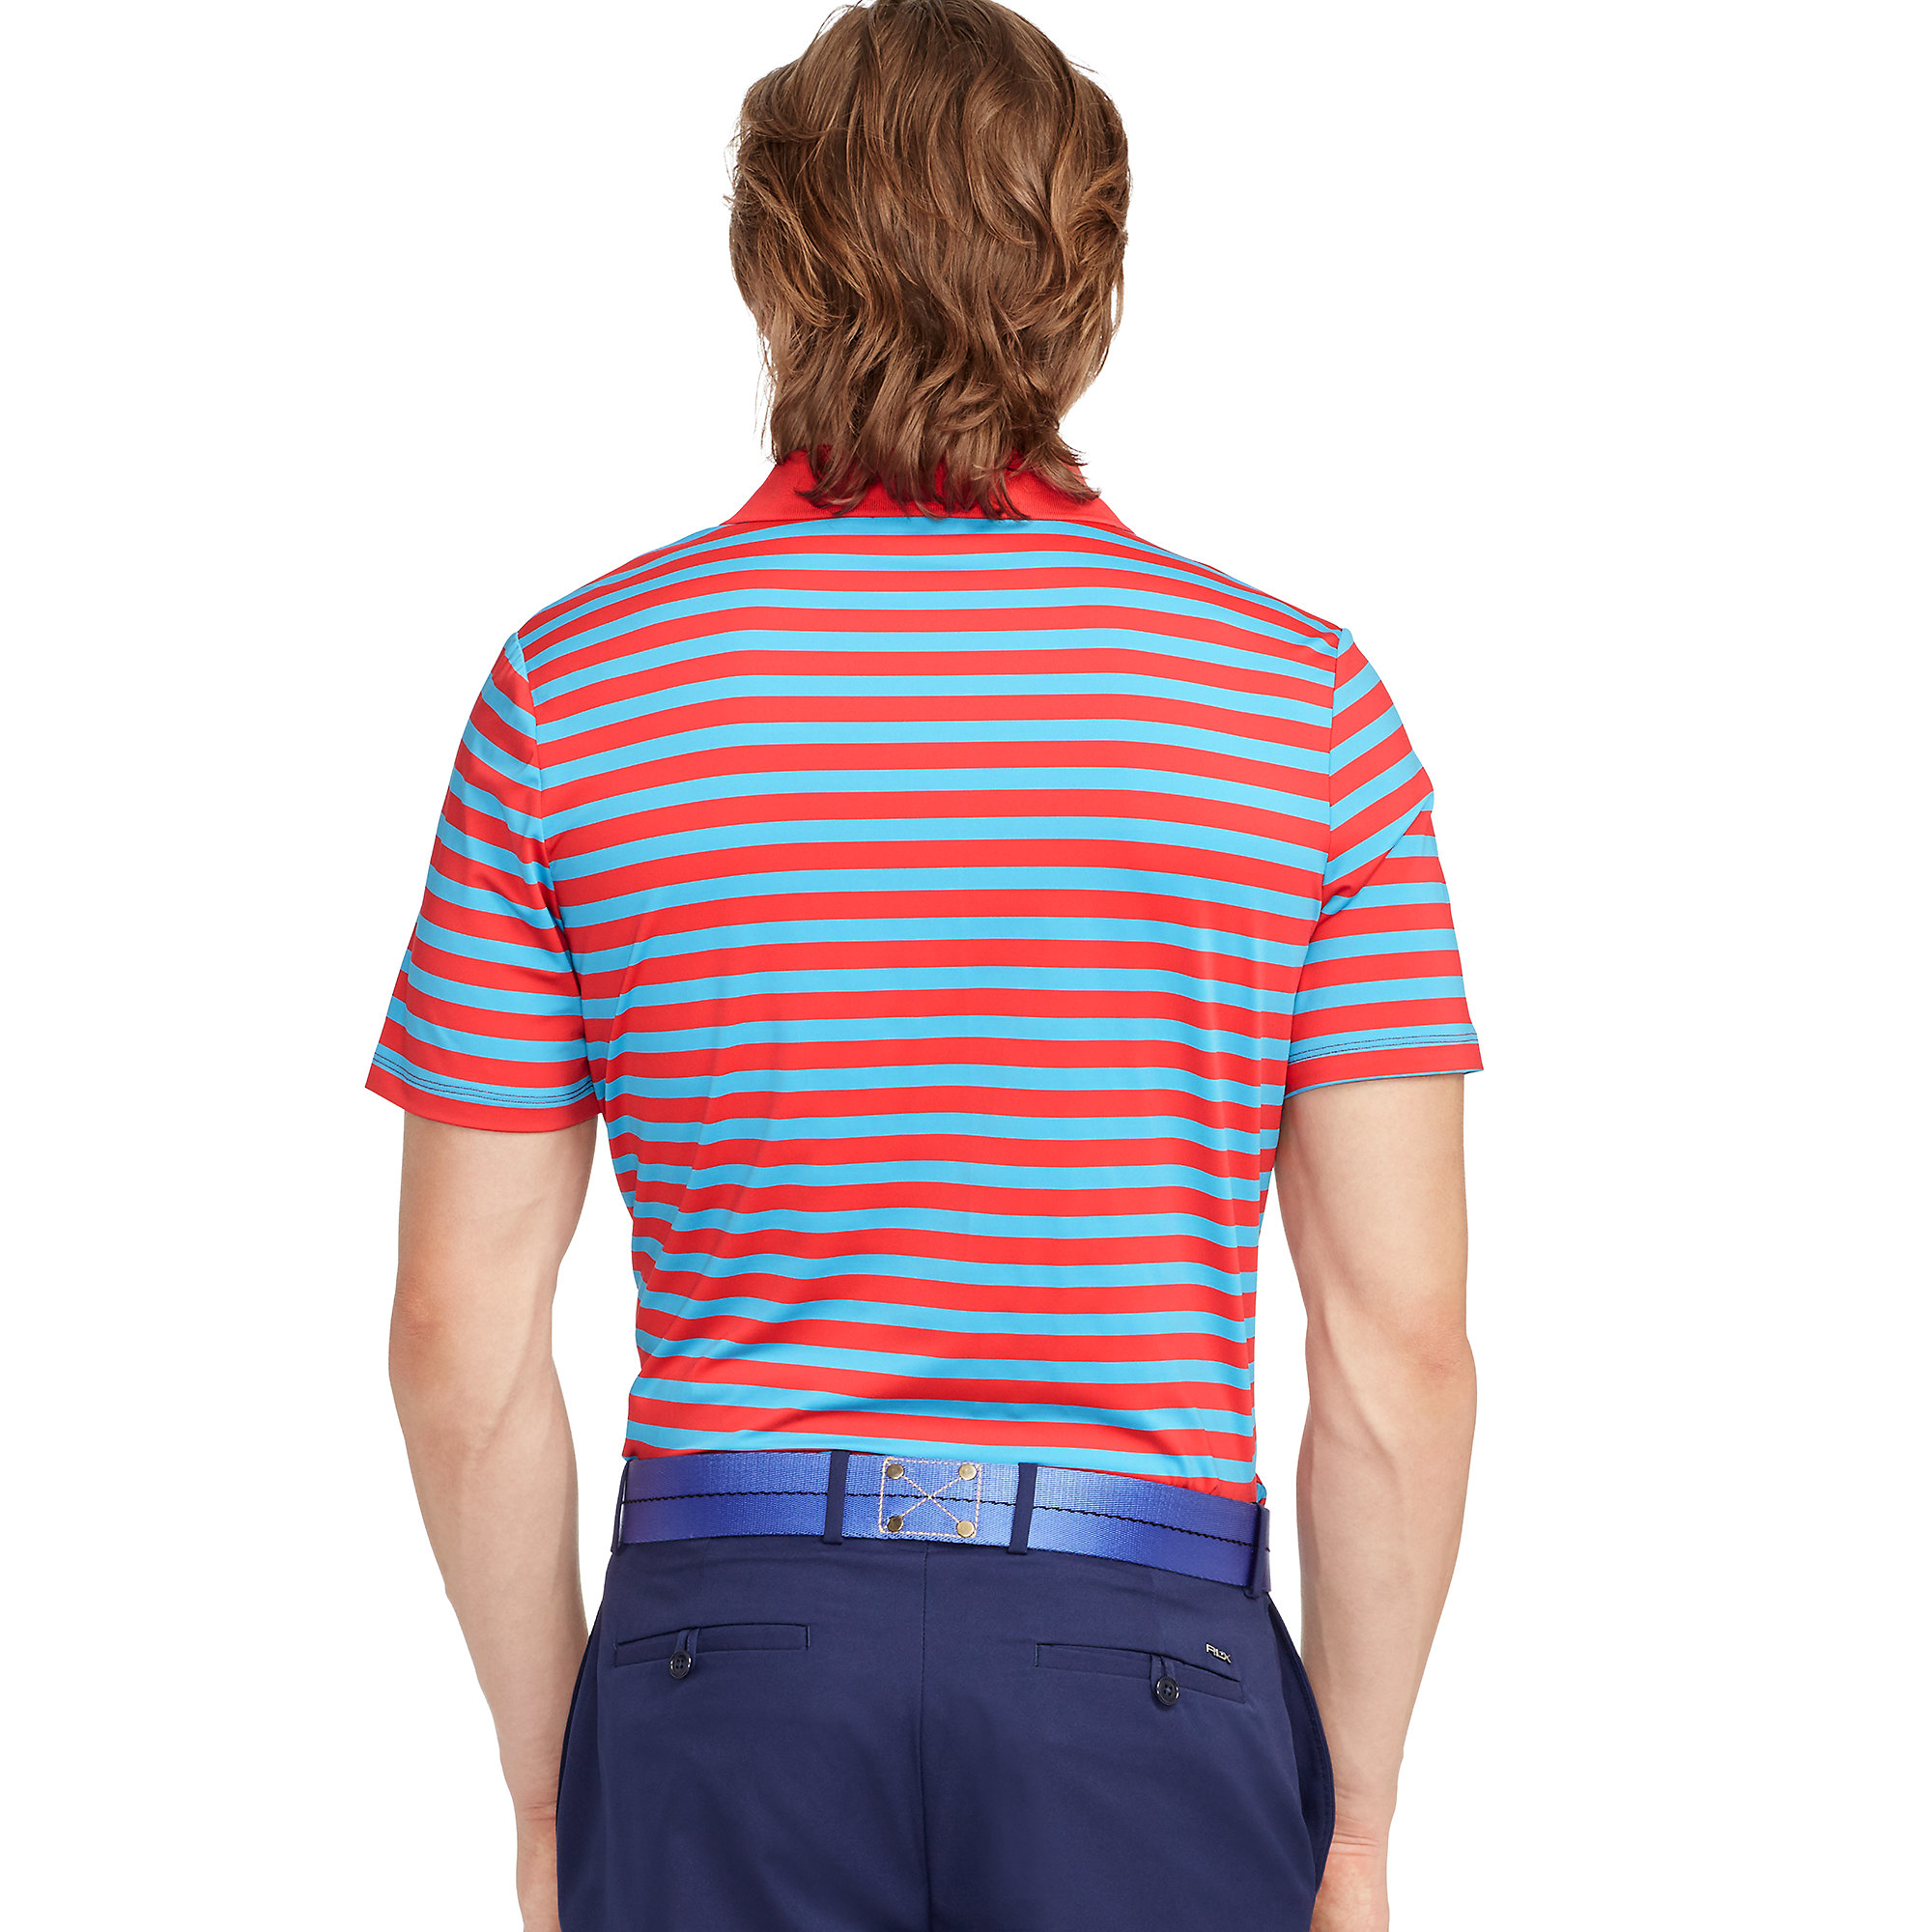 Ralph lauren striped polo shirt in red for men lyst for Red white striped polo shirt